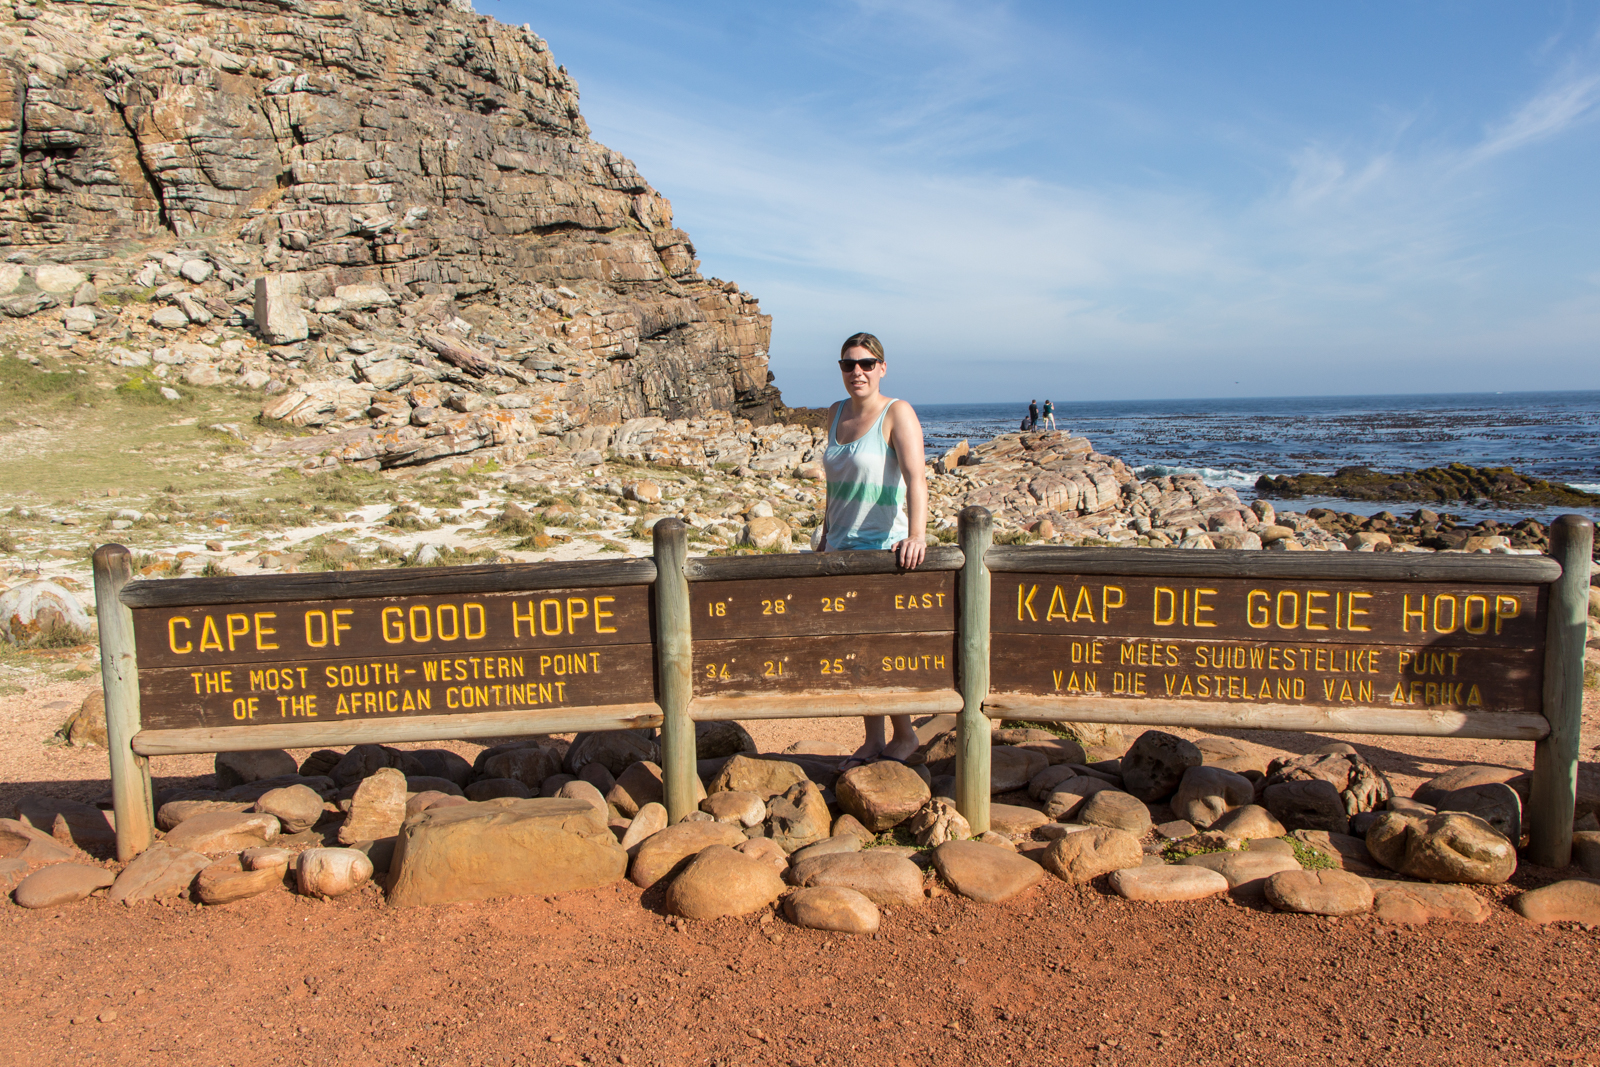 Cape of Good Hope / Cap Halbinsel